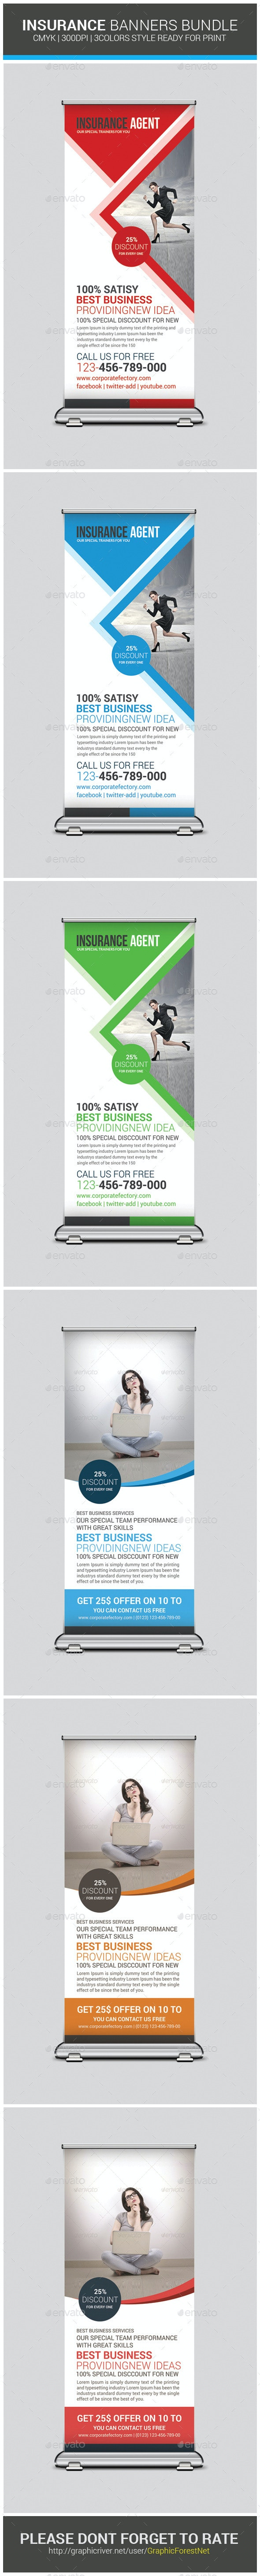 Insurance Business Banners Bundle Template - Signage Print Templates